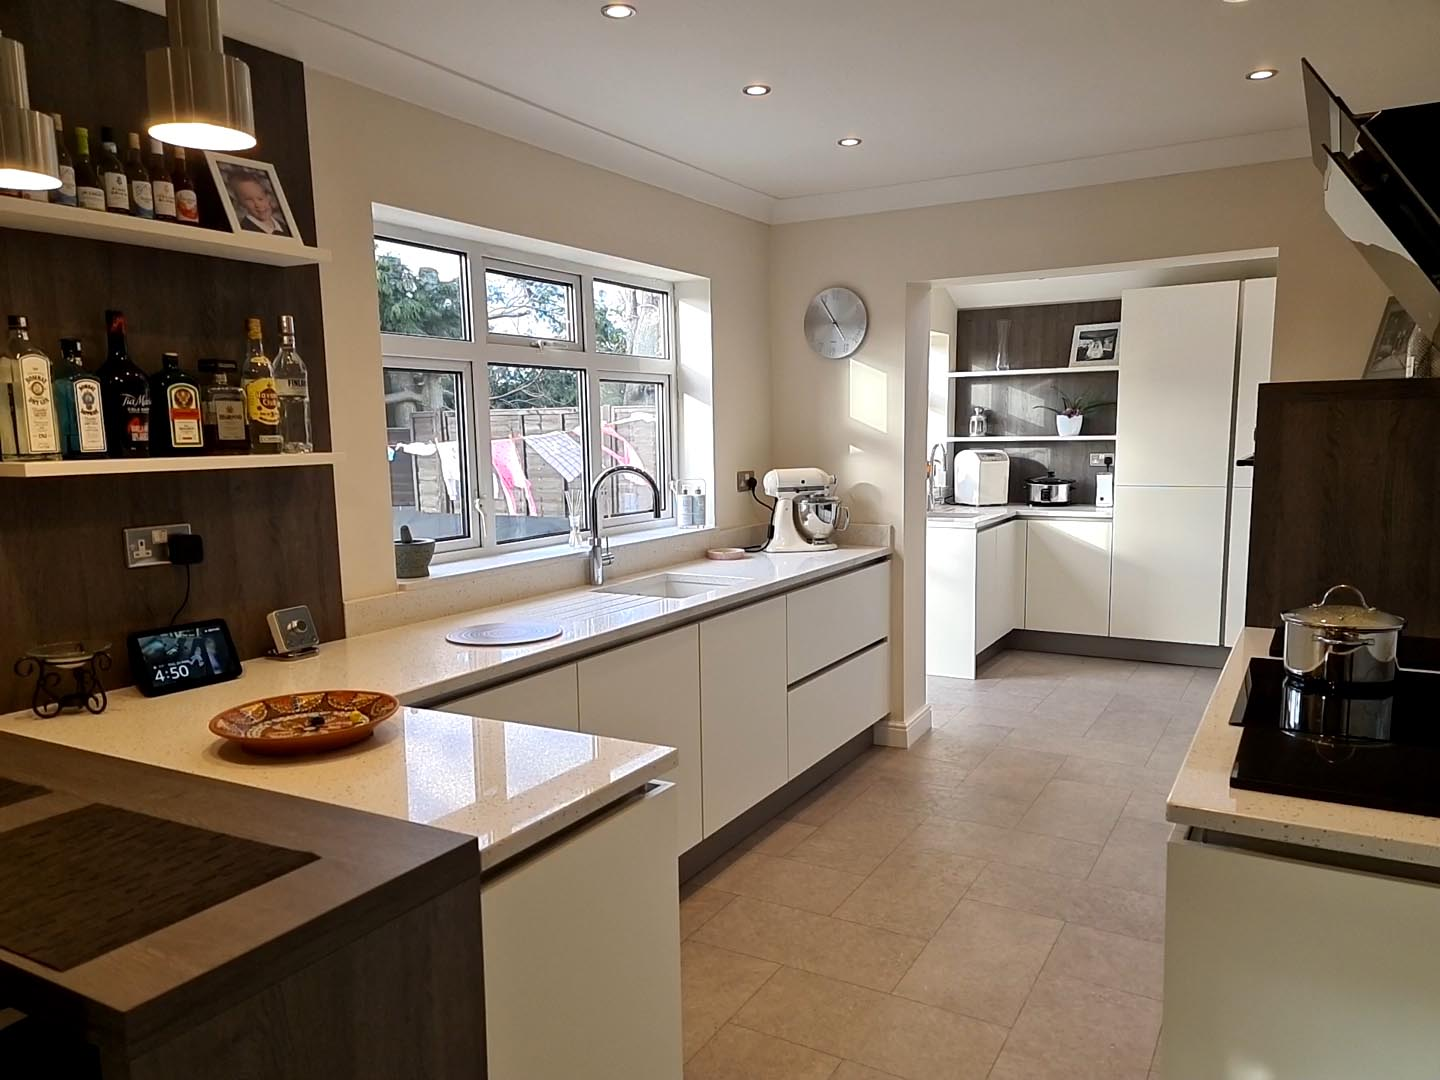 An image of a white marble kitchen utilising the space available